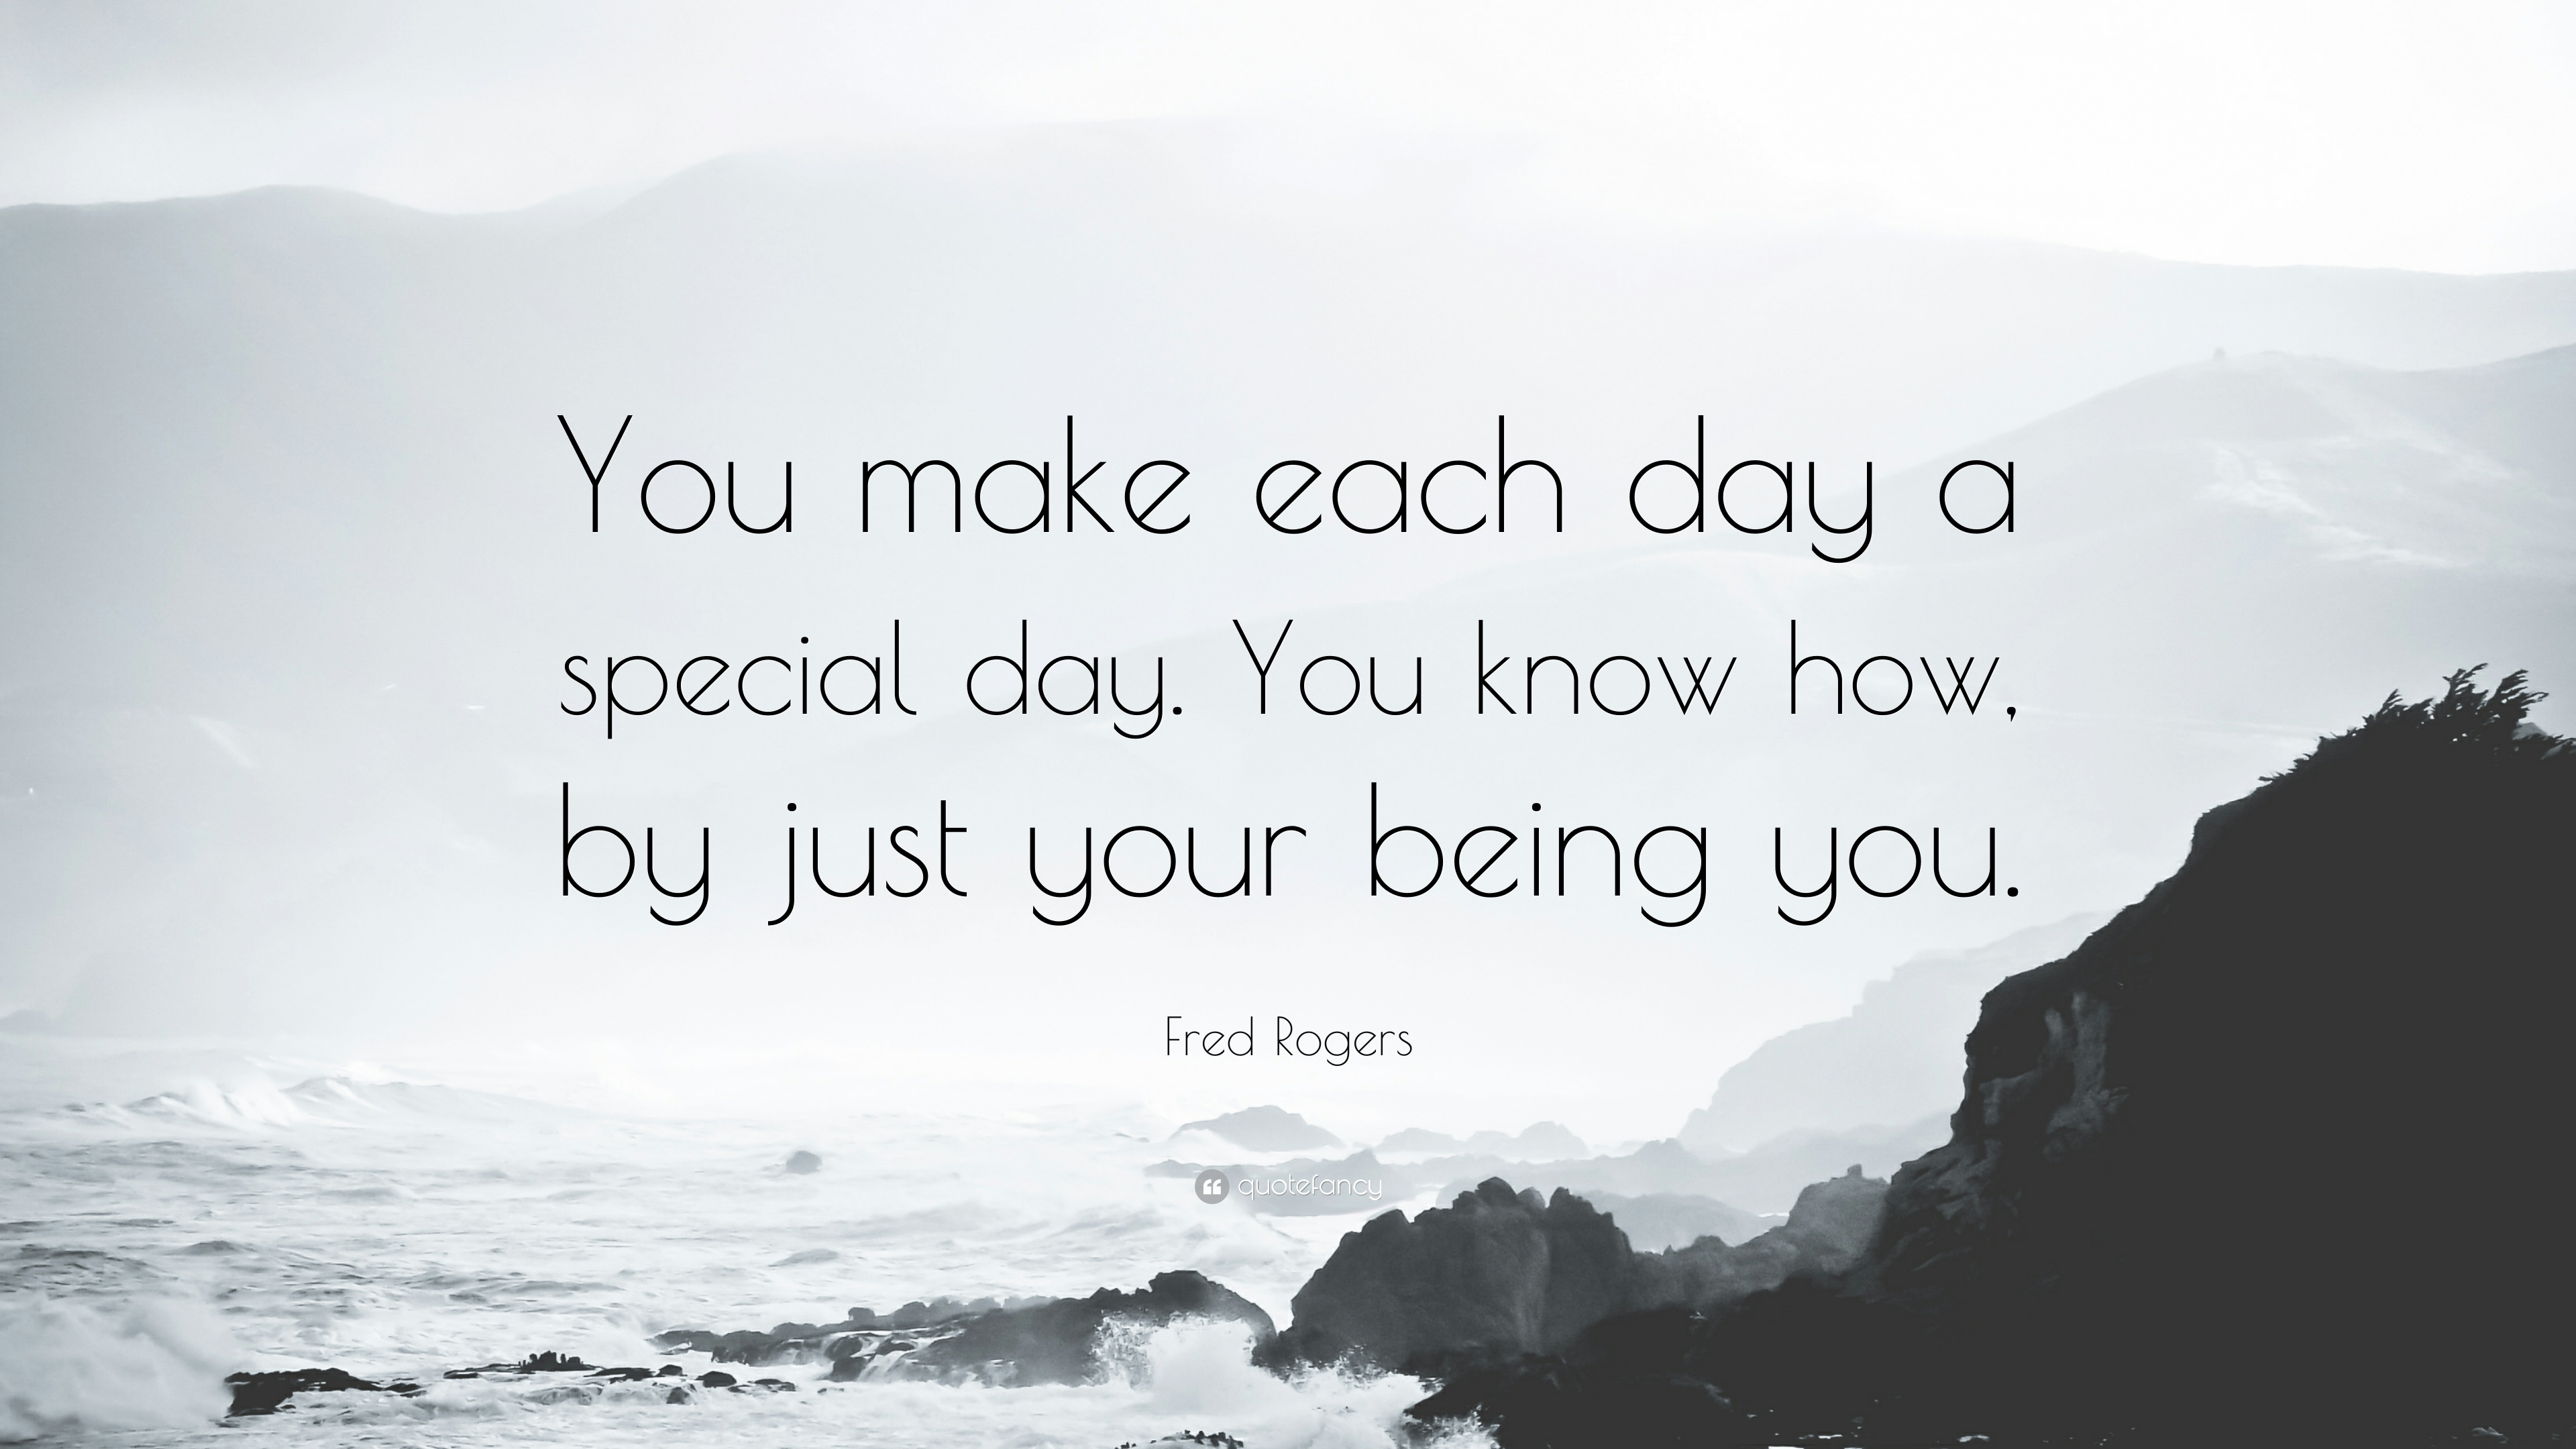 Fred rogers quote you make each day a special day you know how fred rogers quote you make each day a special day you know how thecheapjerseys Choice Image